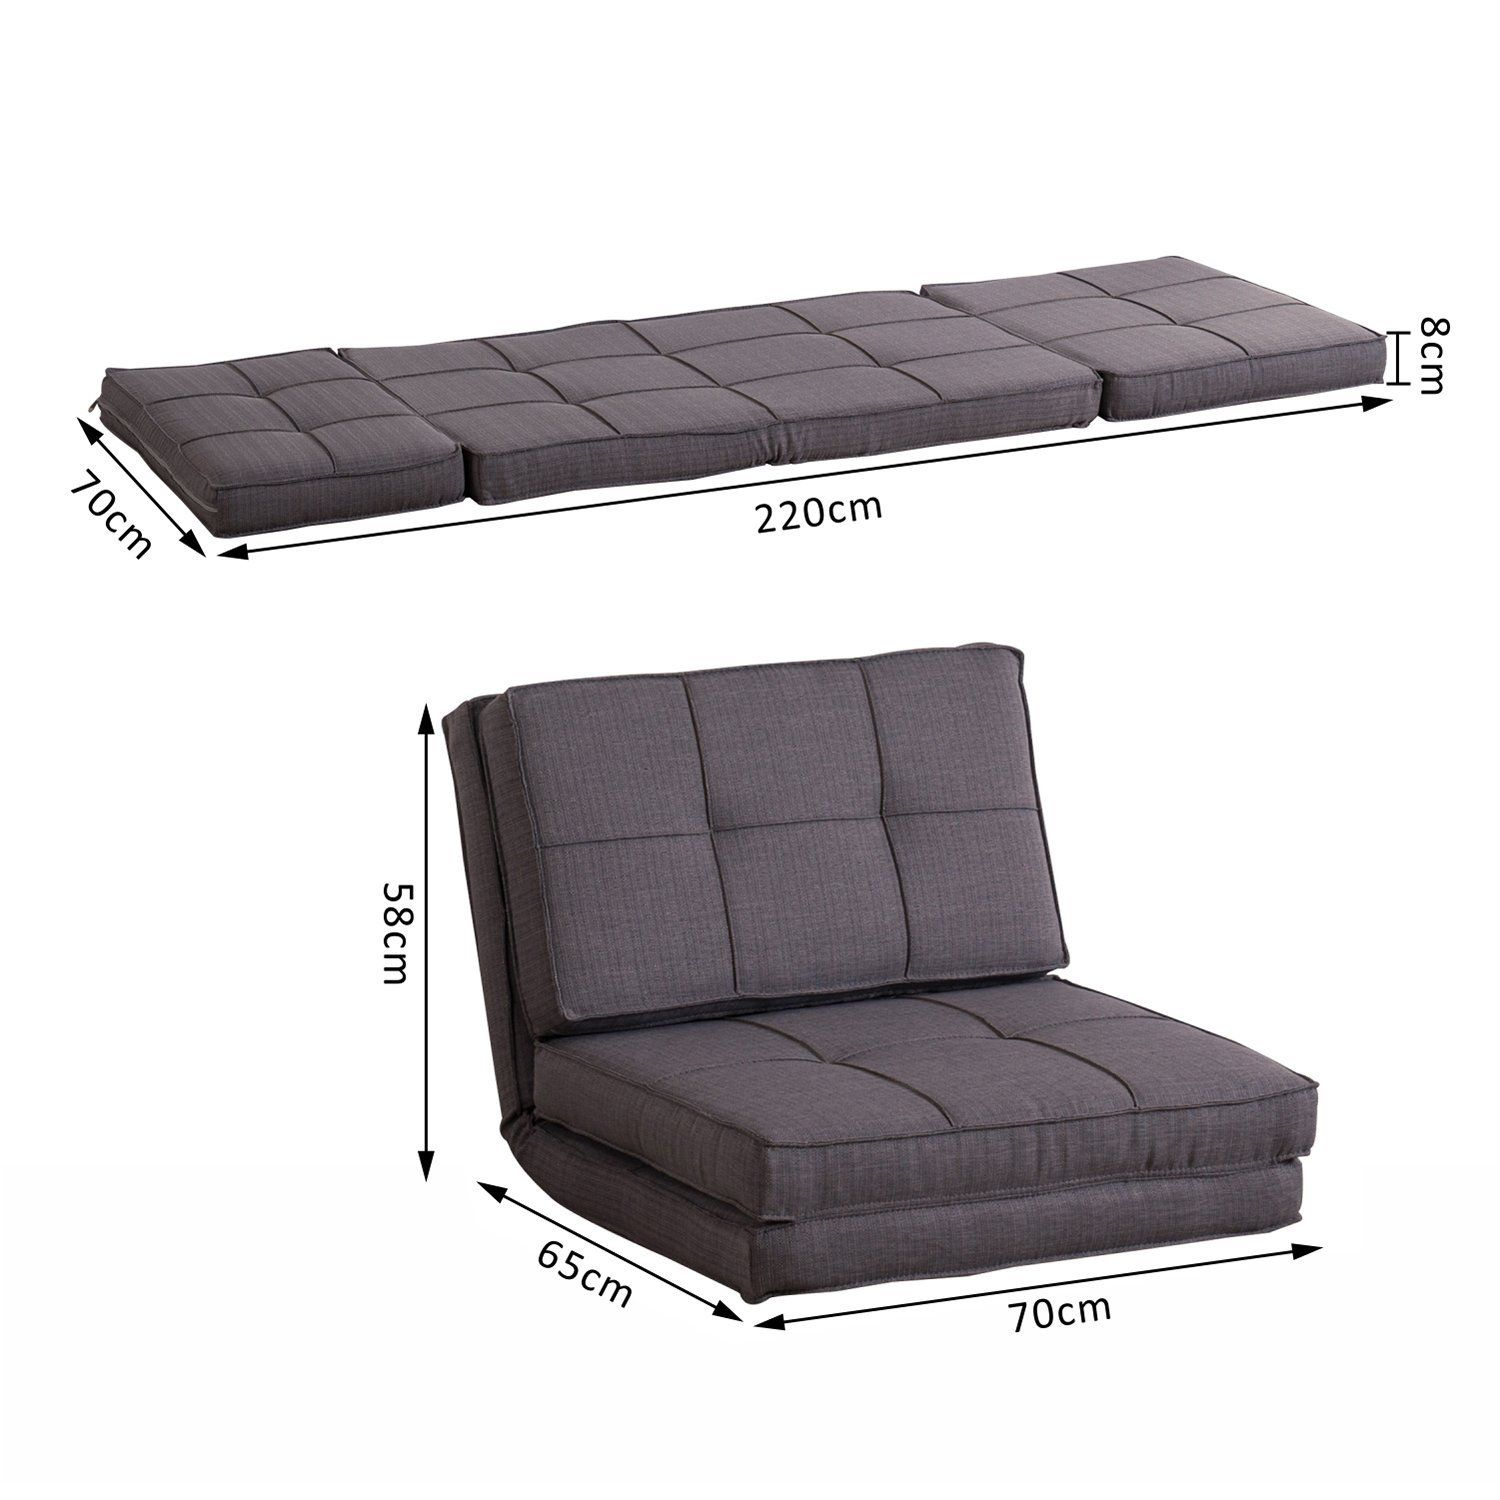 Homcom Single Sofa Bed Fold Out Guest Chair Foldable Futon Sleeper